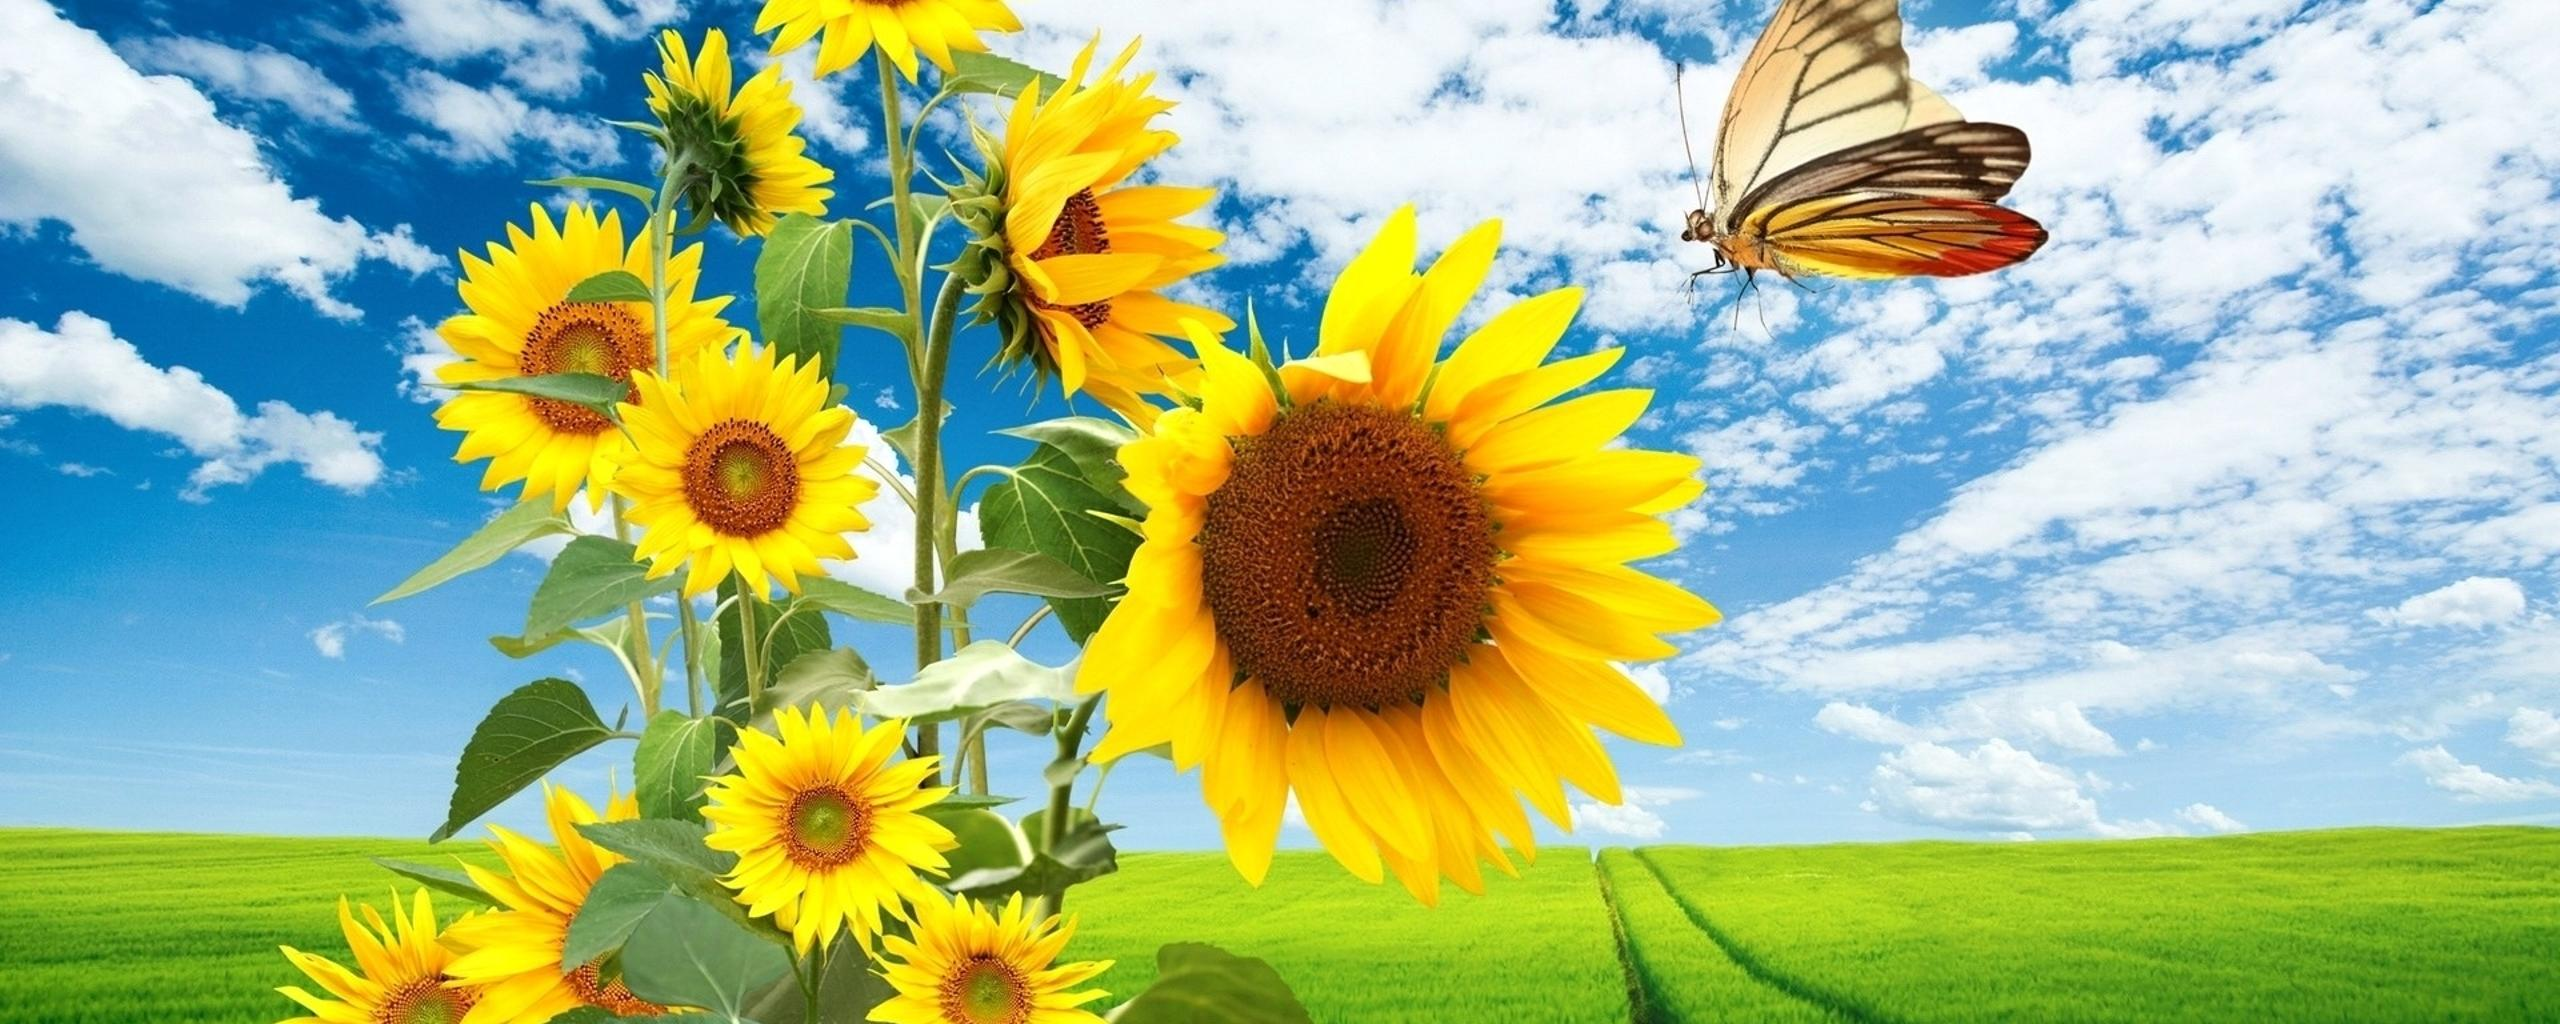 Download Wallpaper 2560x1024 Big sunflowers and a beautiful butterfly - HD wallpaper